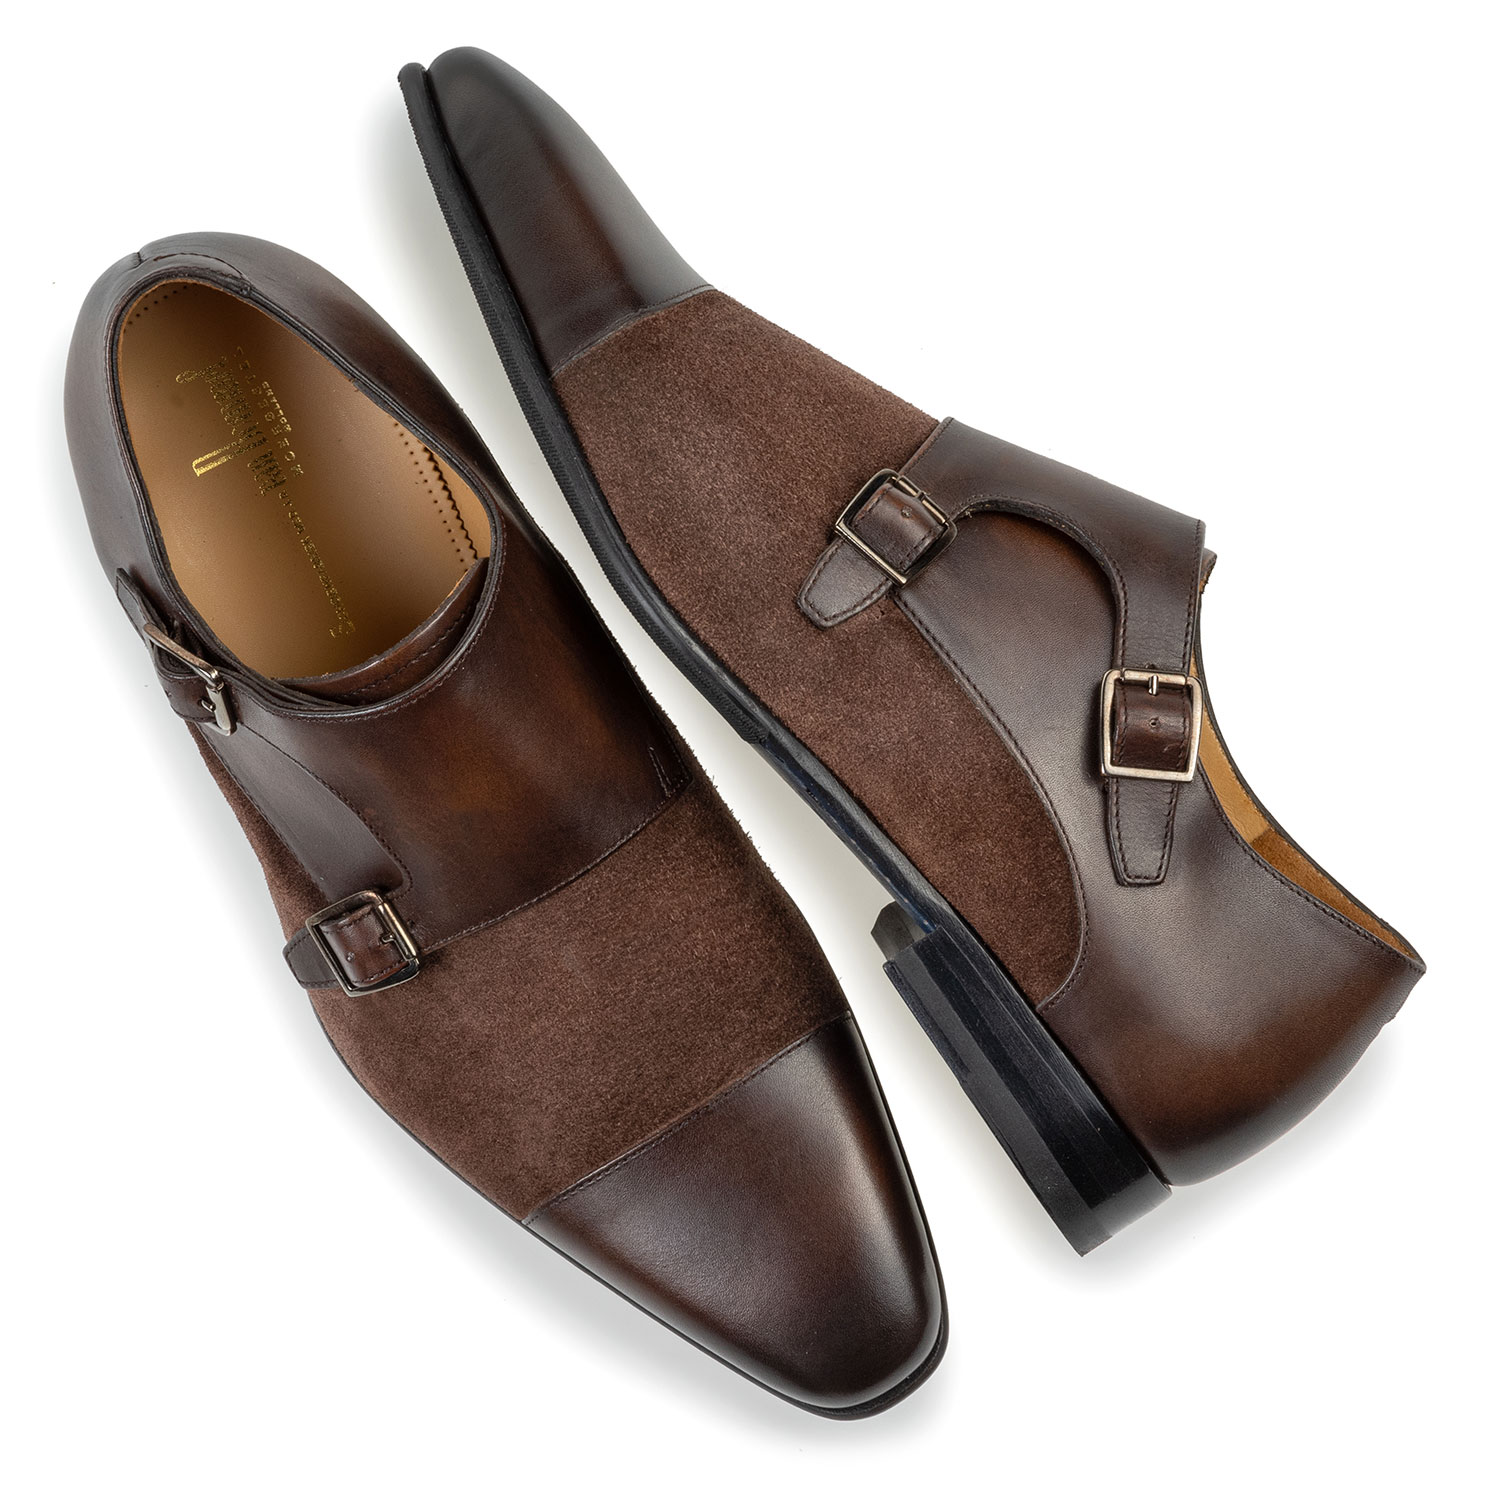 12296/00 - Double monk strap dark brown